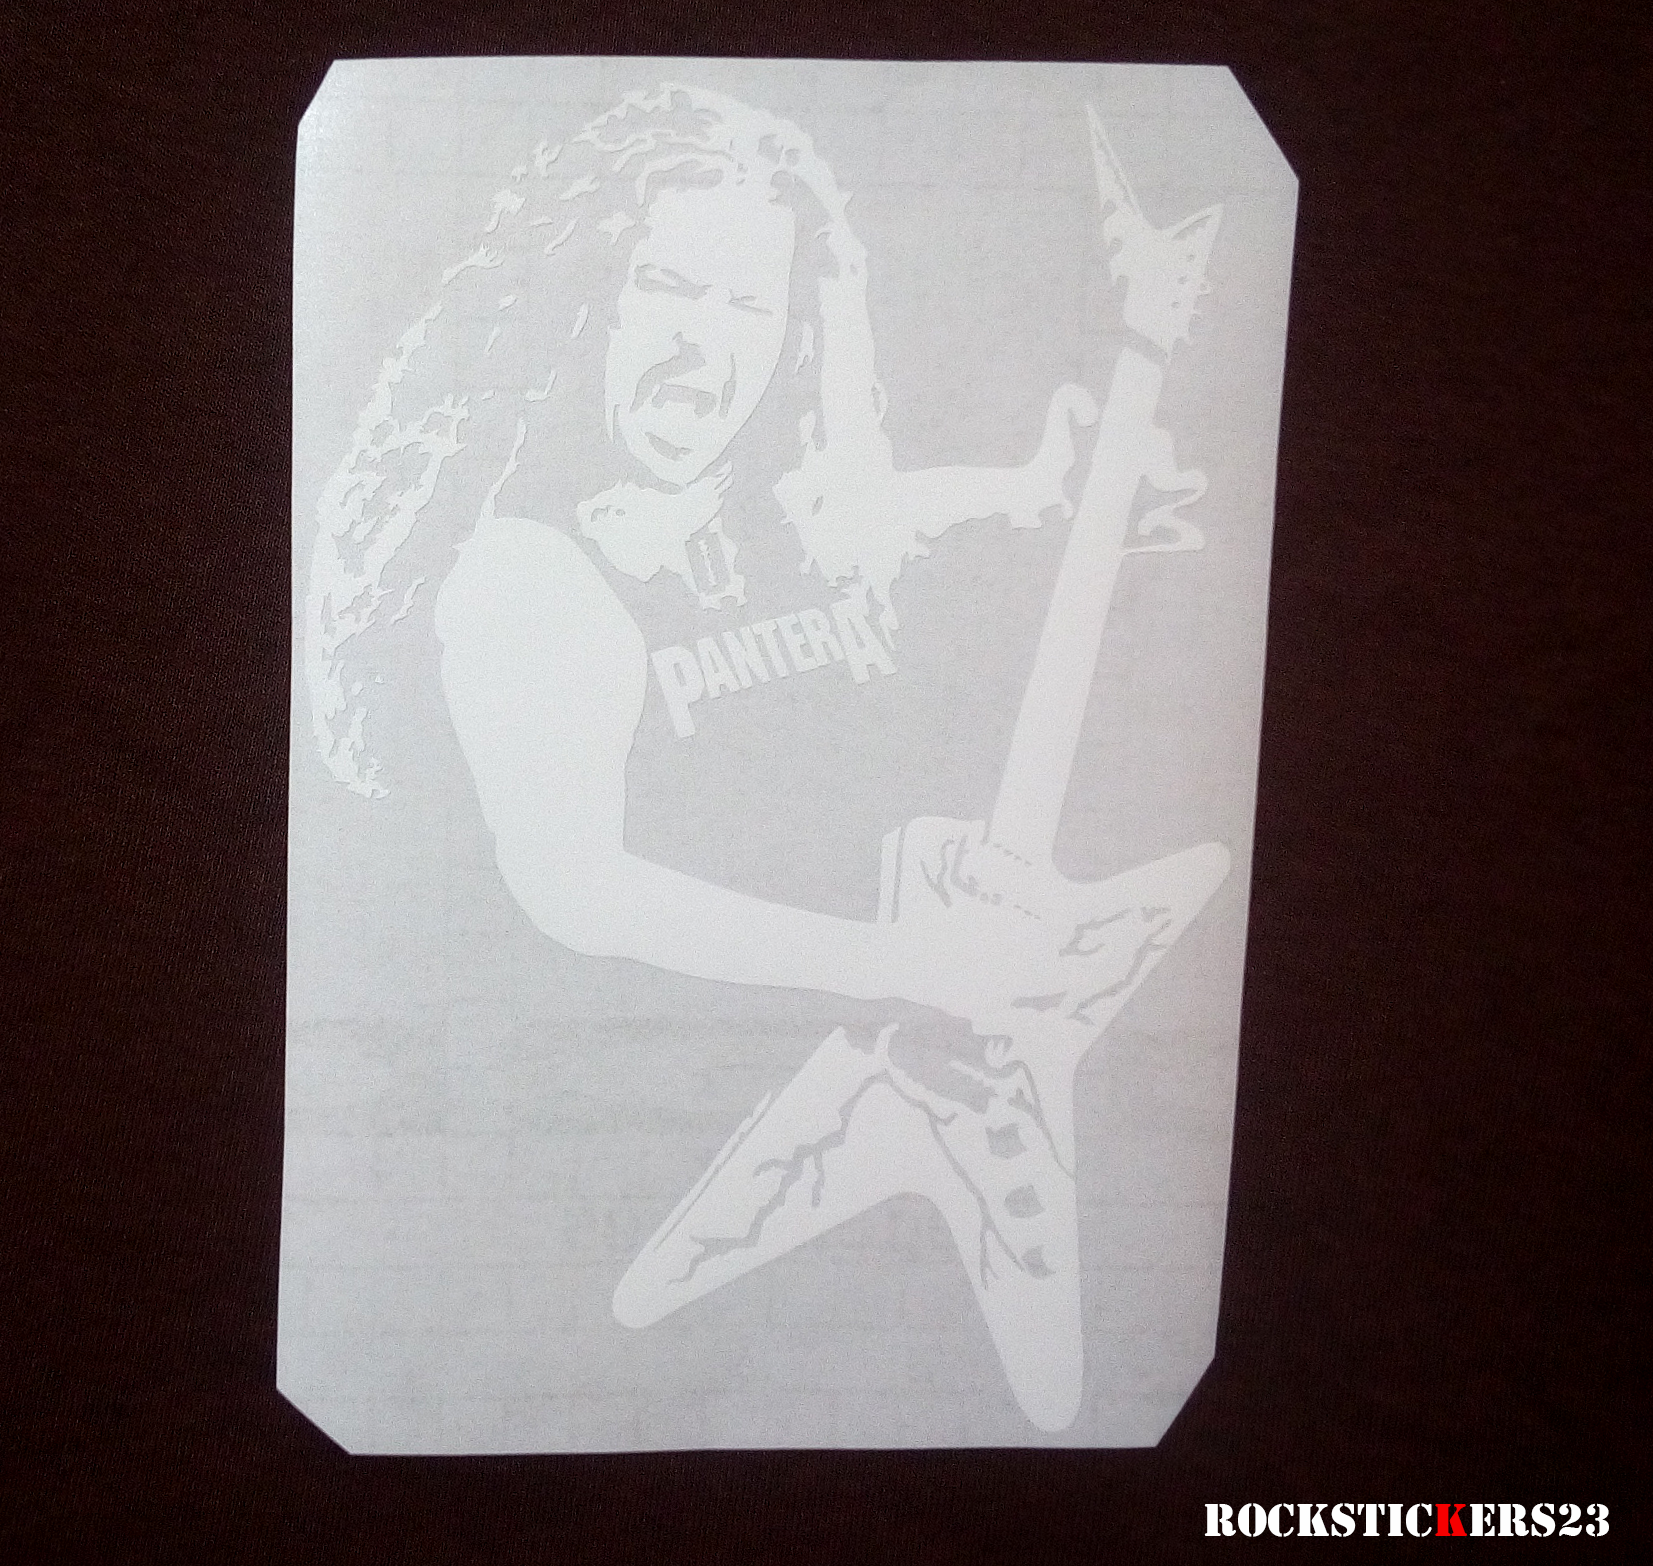 stickers window pantera band stickers